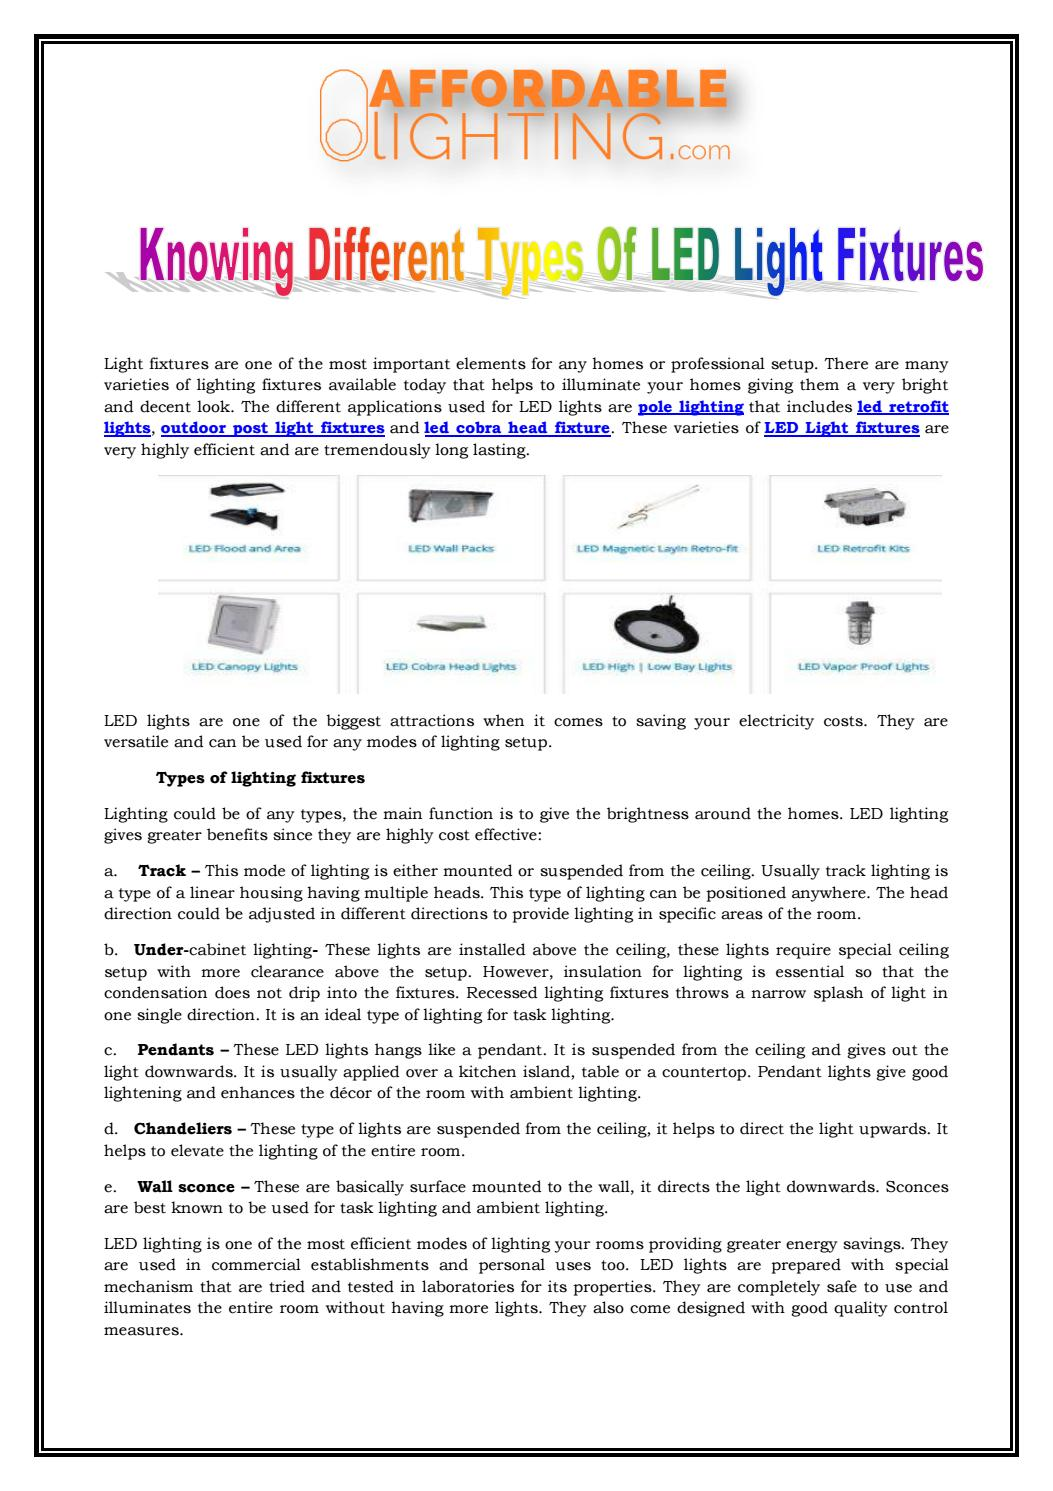 Knowing different types of led light fixtures by sophia james issuu